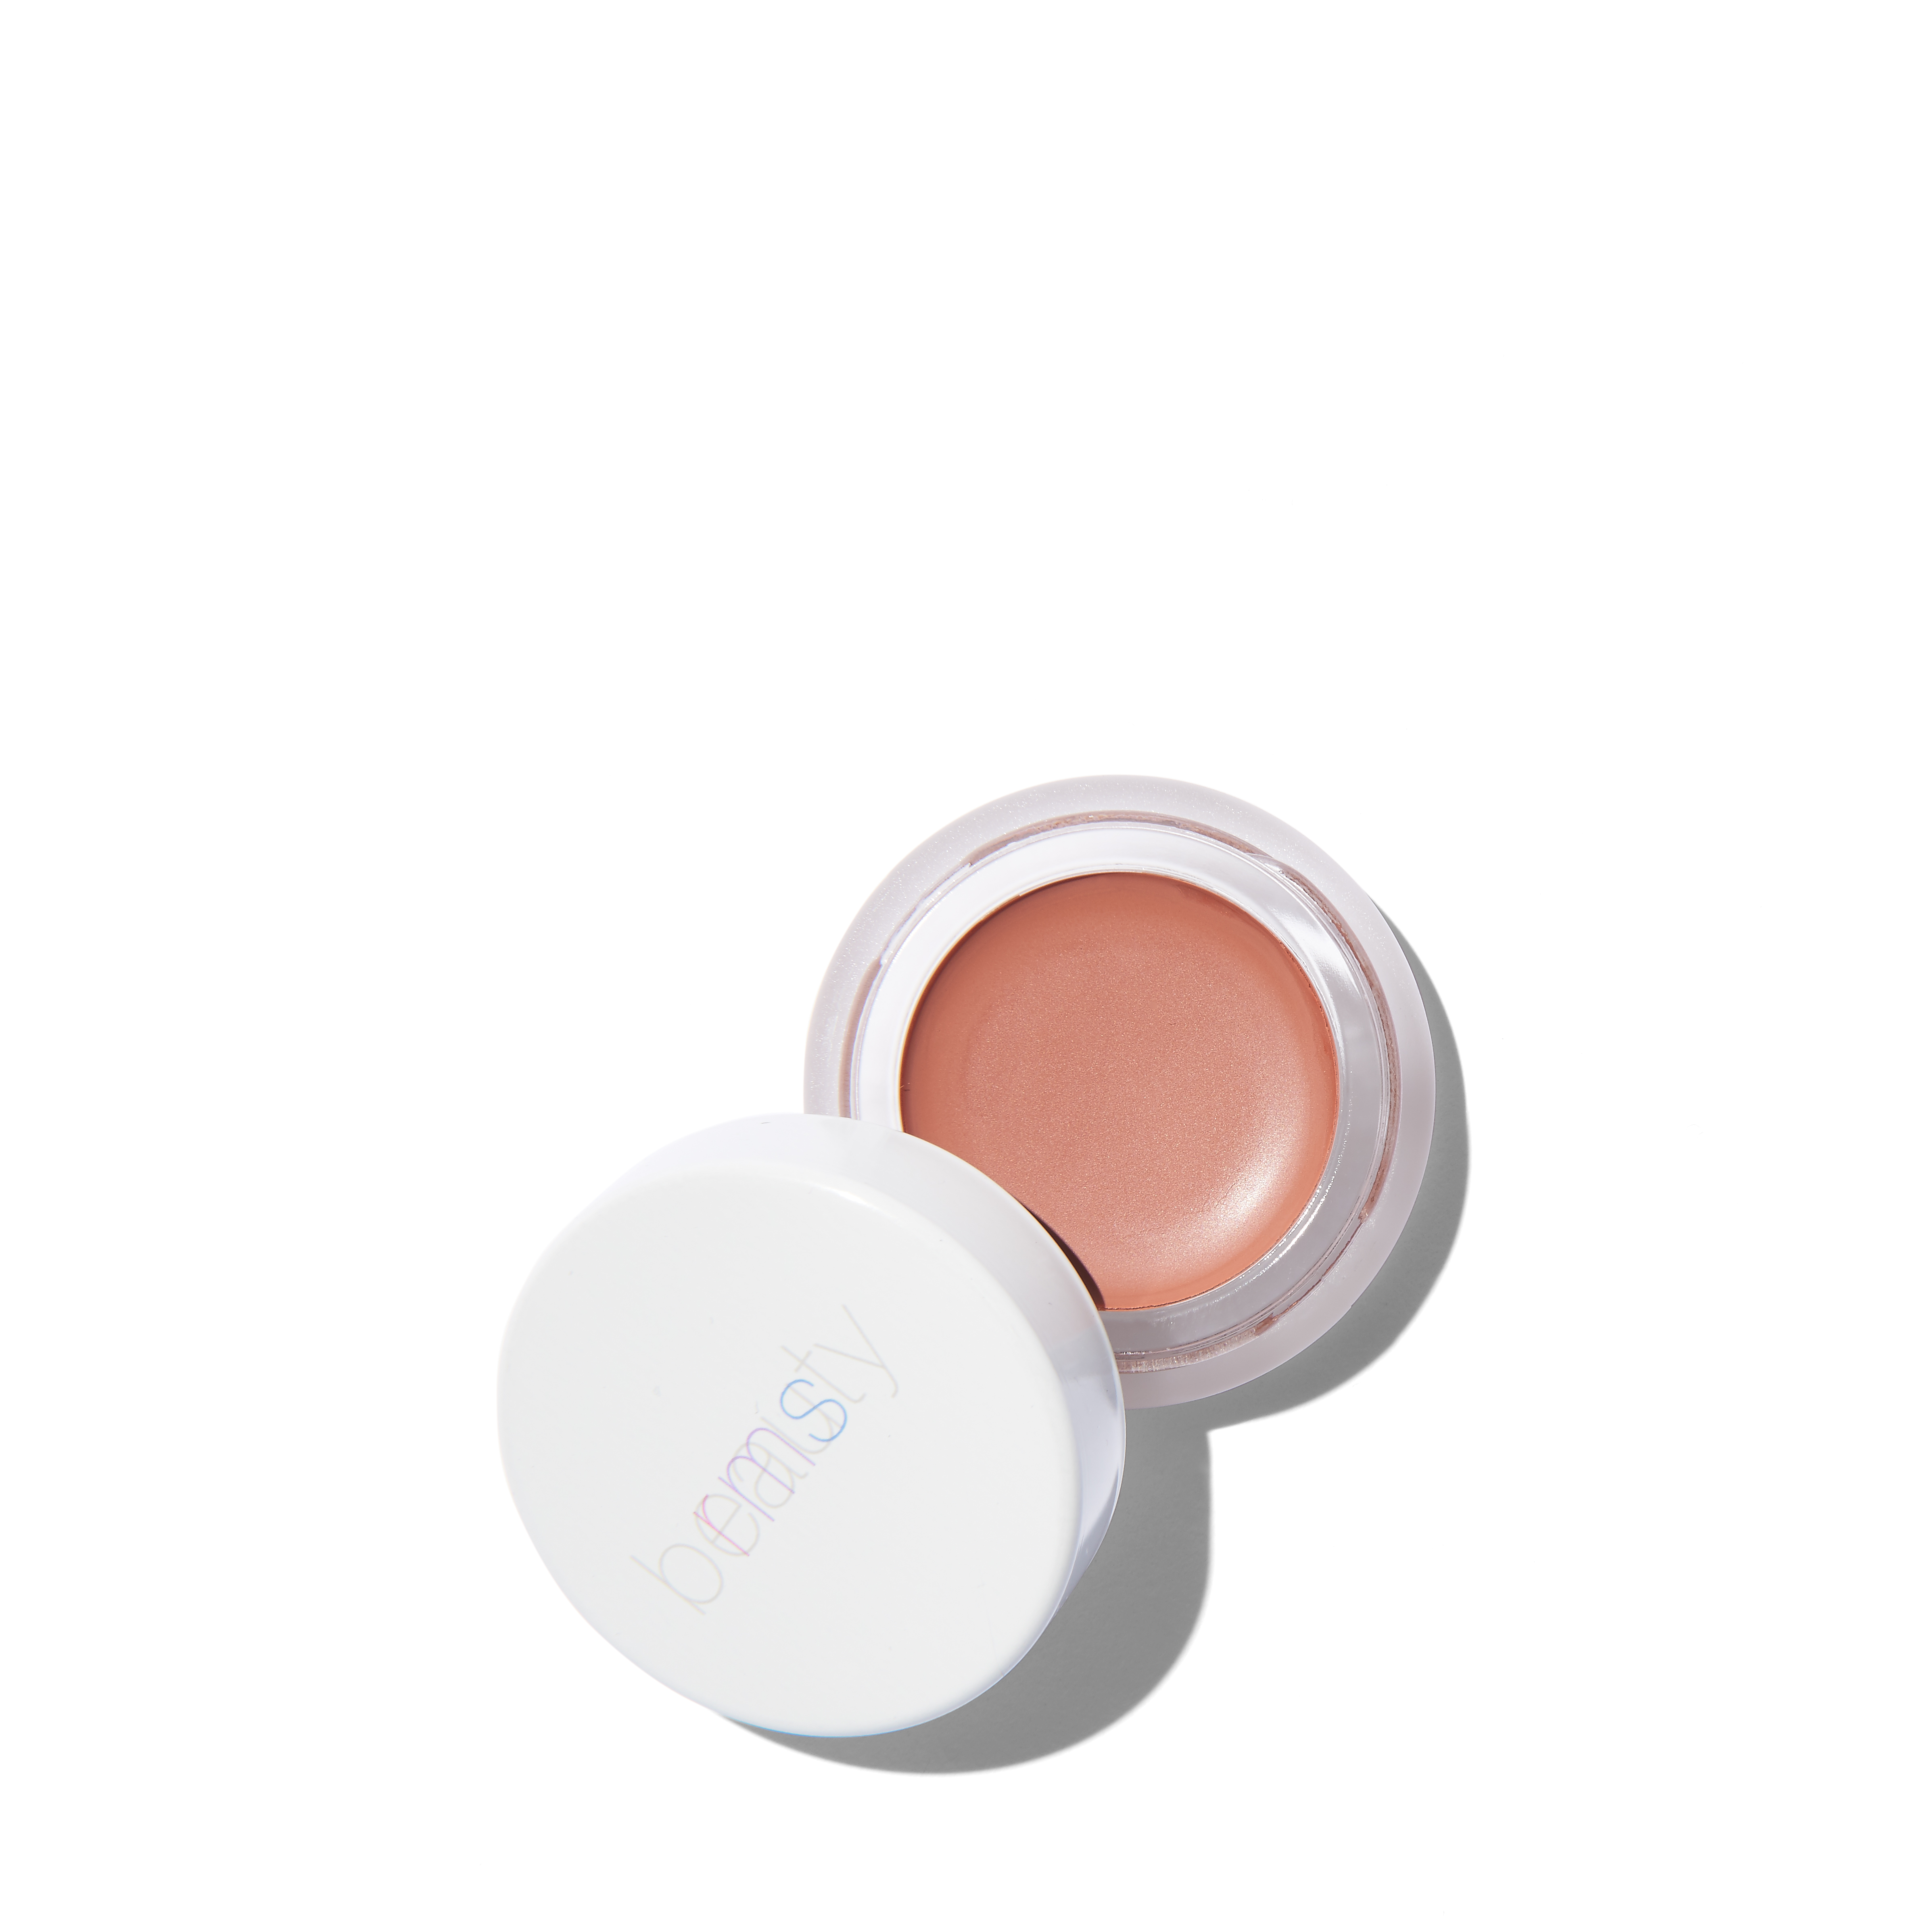 816248020591 - RMS Beauty Lip2Cheek